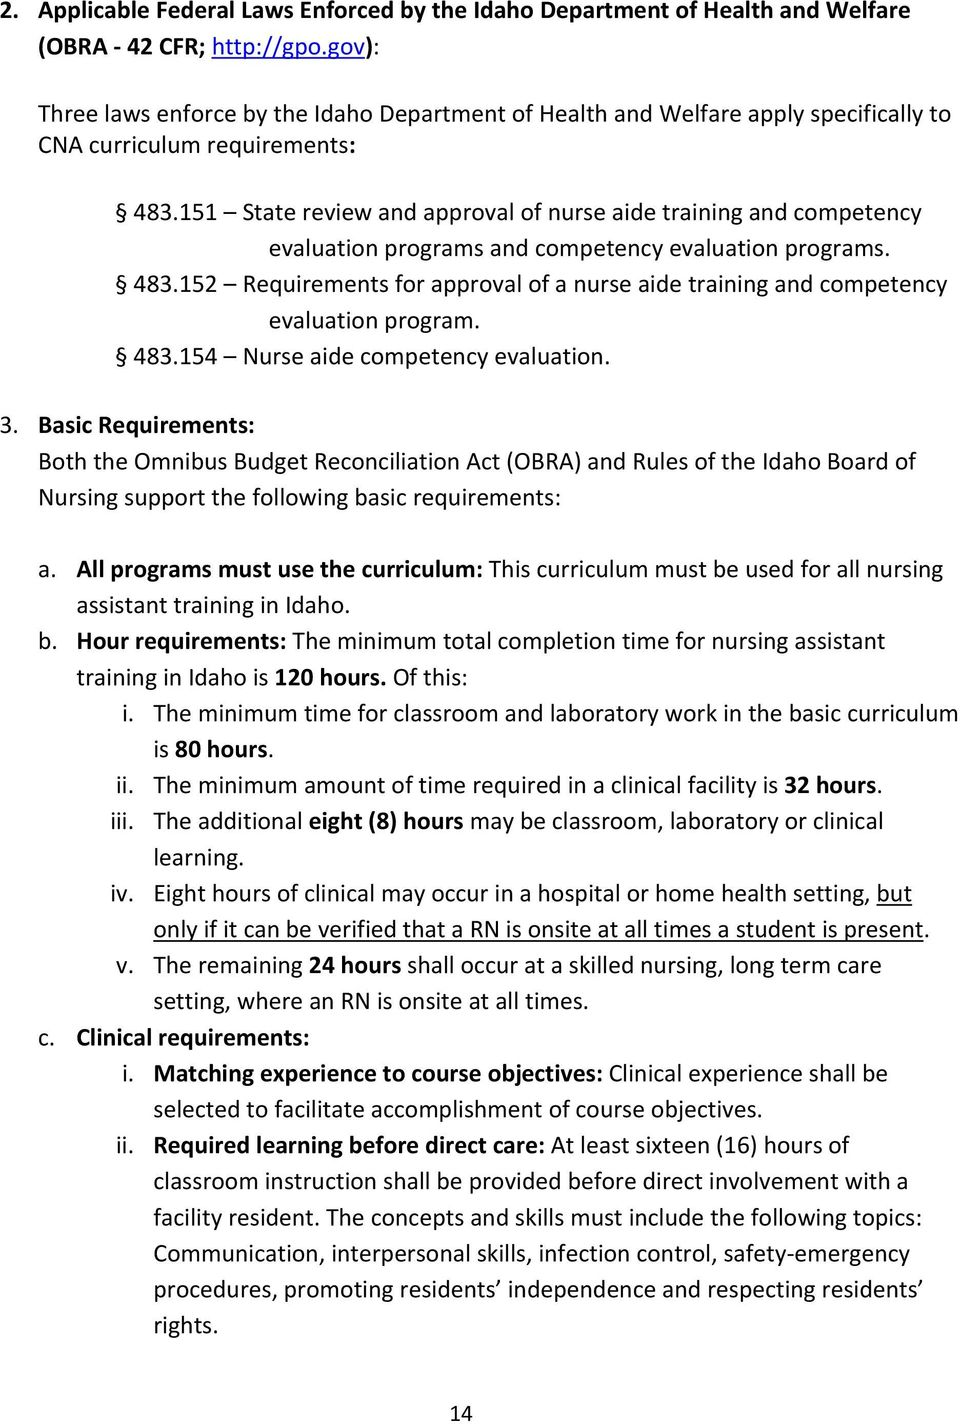 151 State review and approval of nurse aide training and competency evaluation programs and competency evaluation programs. 483.